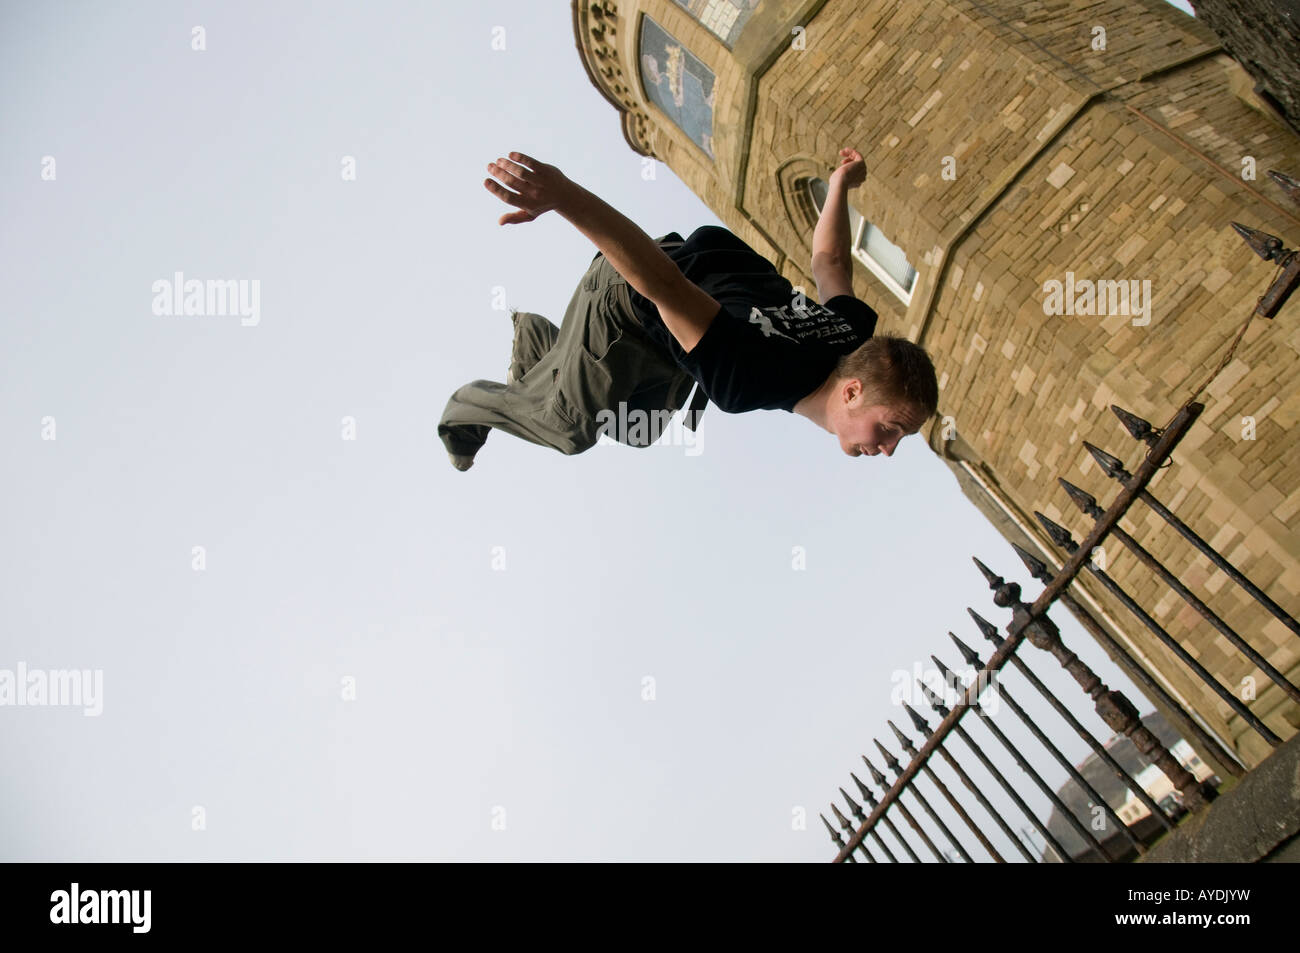 Young man parkour freerunner Aberystwyth wales UK doing a backflip outside the university - Stock Image